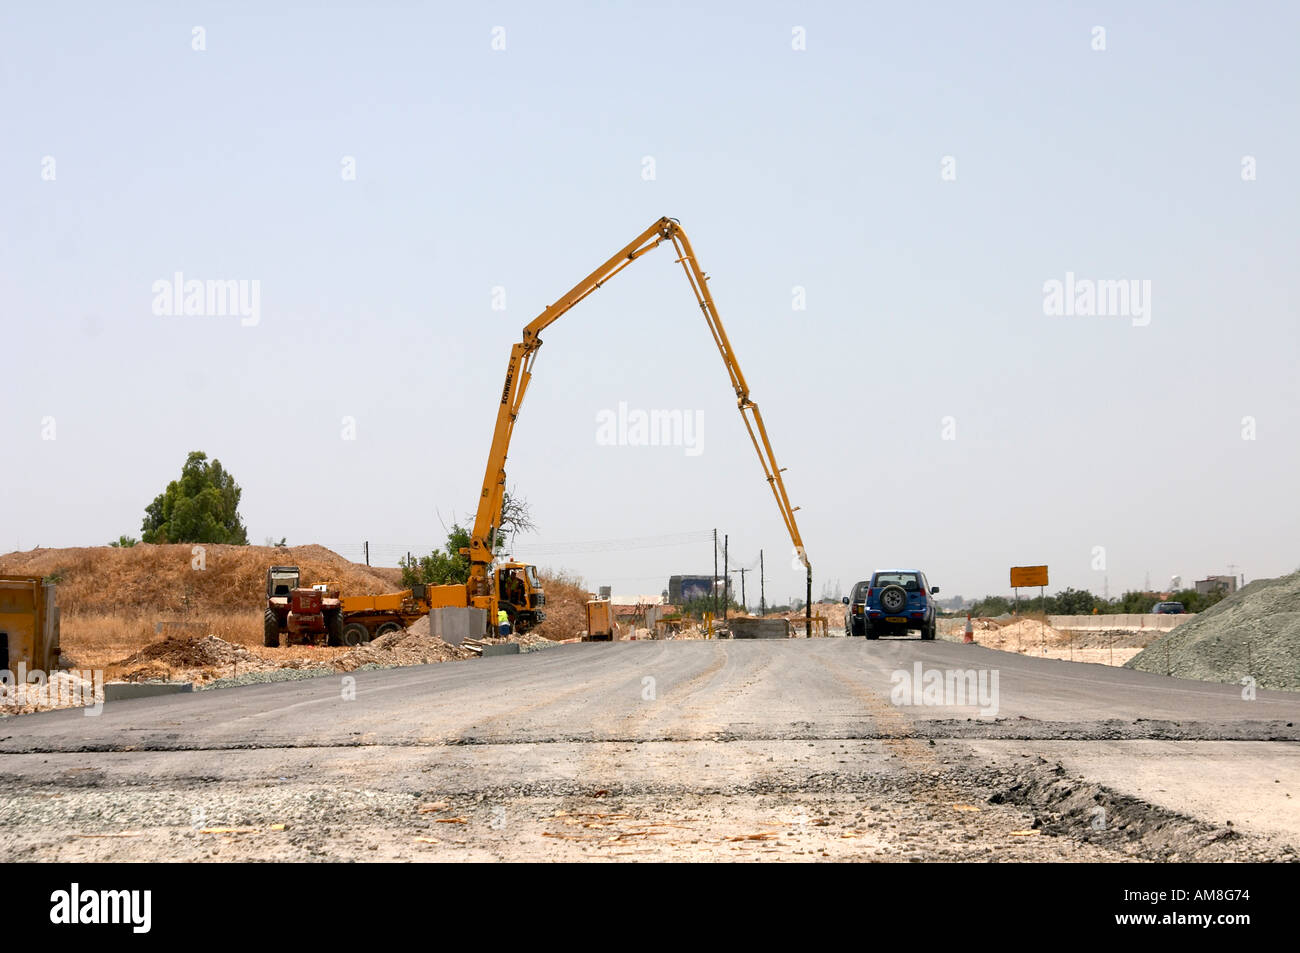 Concrete pump and Civil Engineering plant on Road